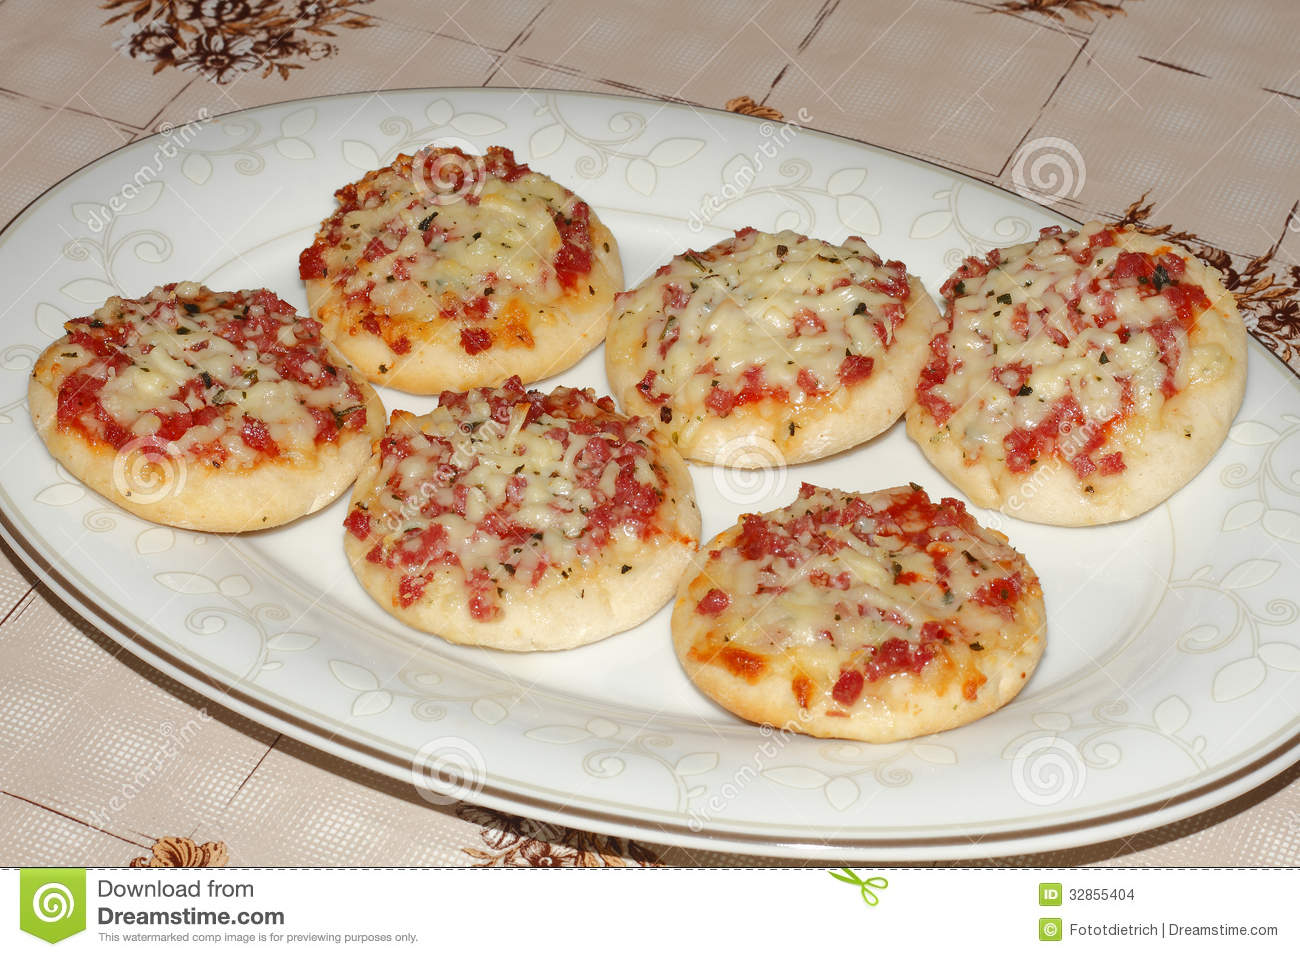 how to cook mini pizzas